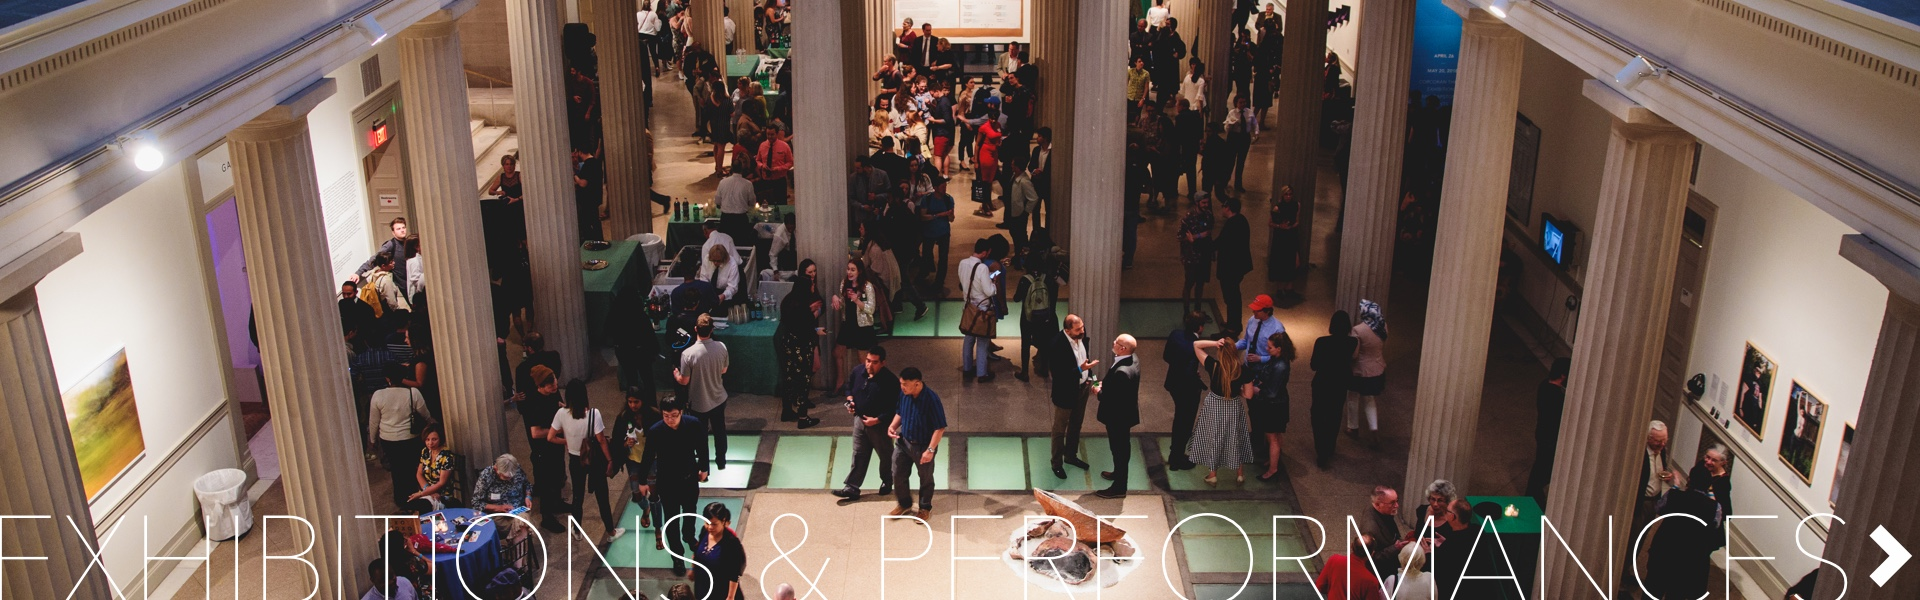 Exhibitions & Performances; large group of people in the Flagg building atrium for an event